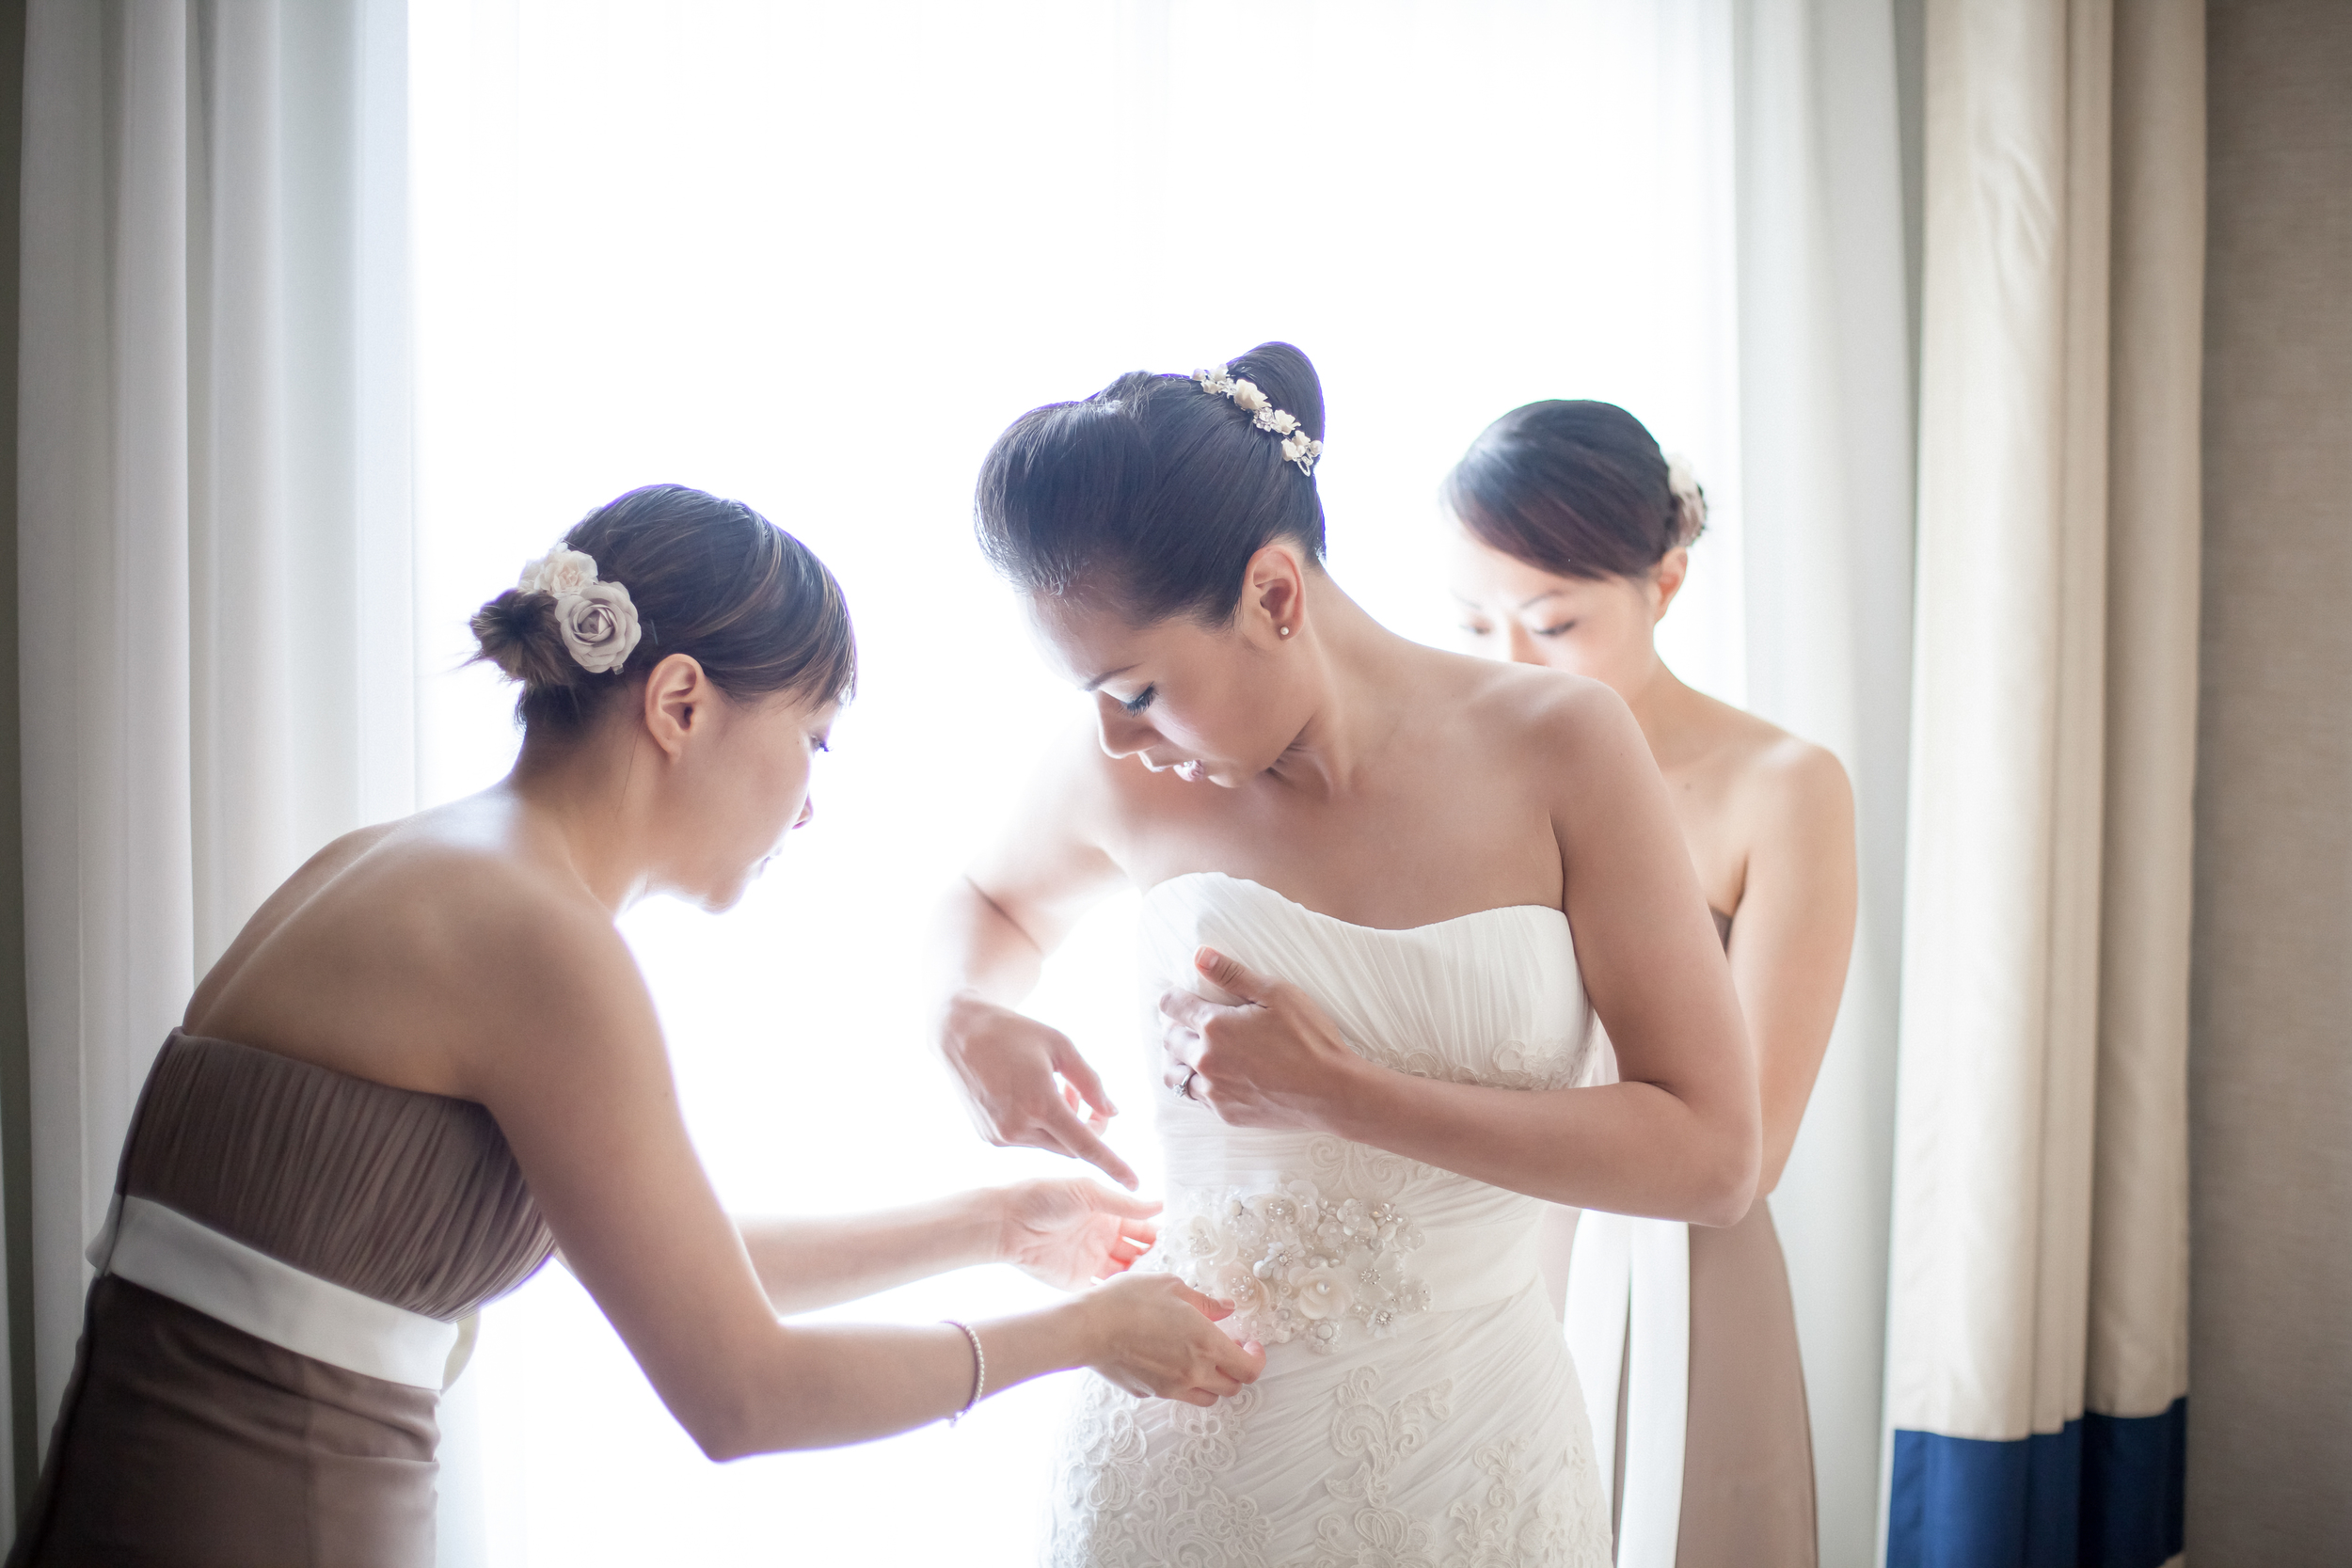 Bride and bridesmaids getting ready in a hotel